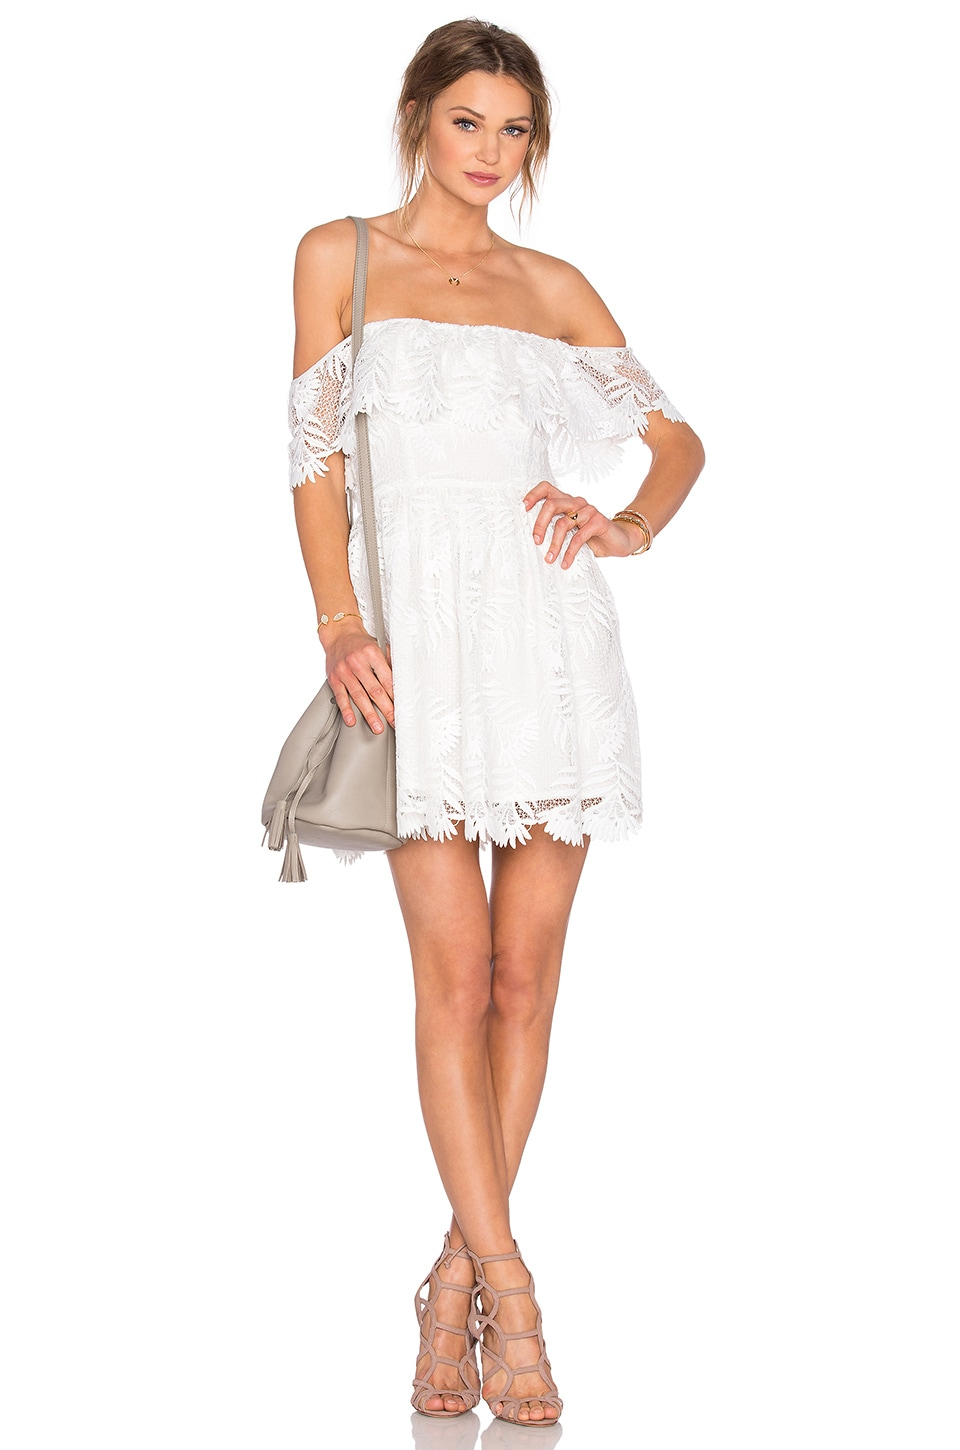 Lovers + Friends x REVOLVE Dream Vacay Dress in White